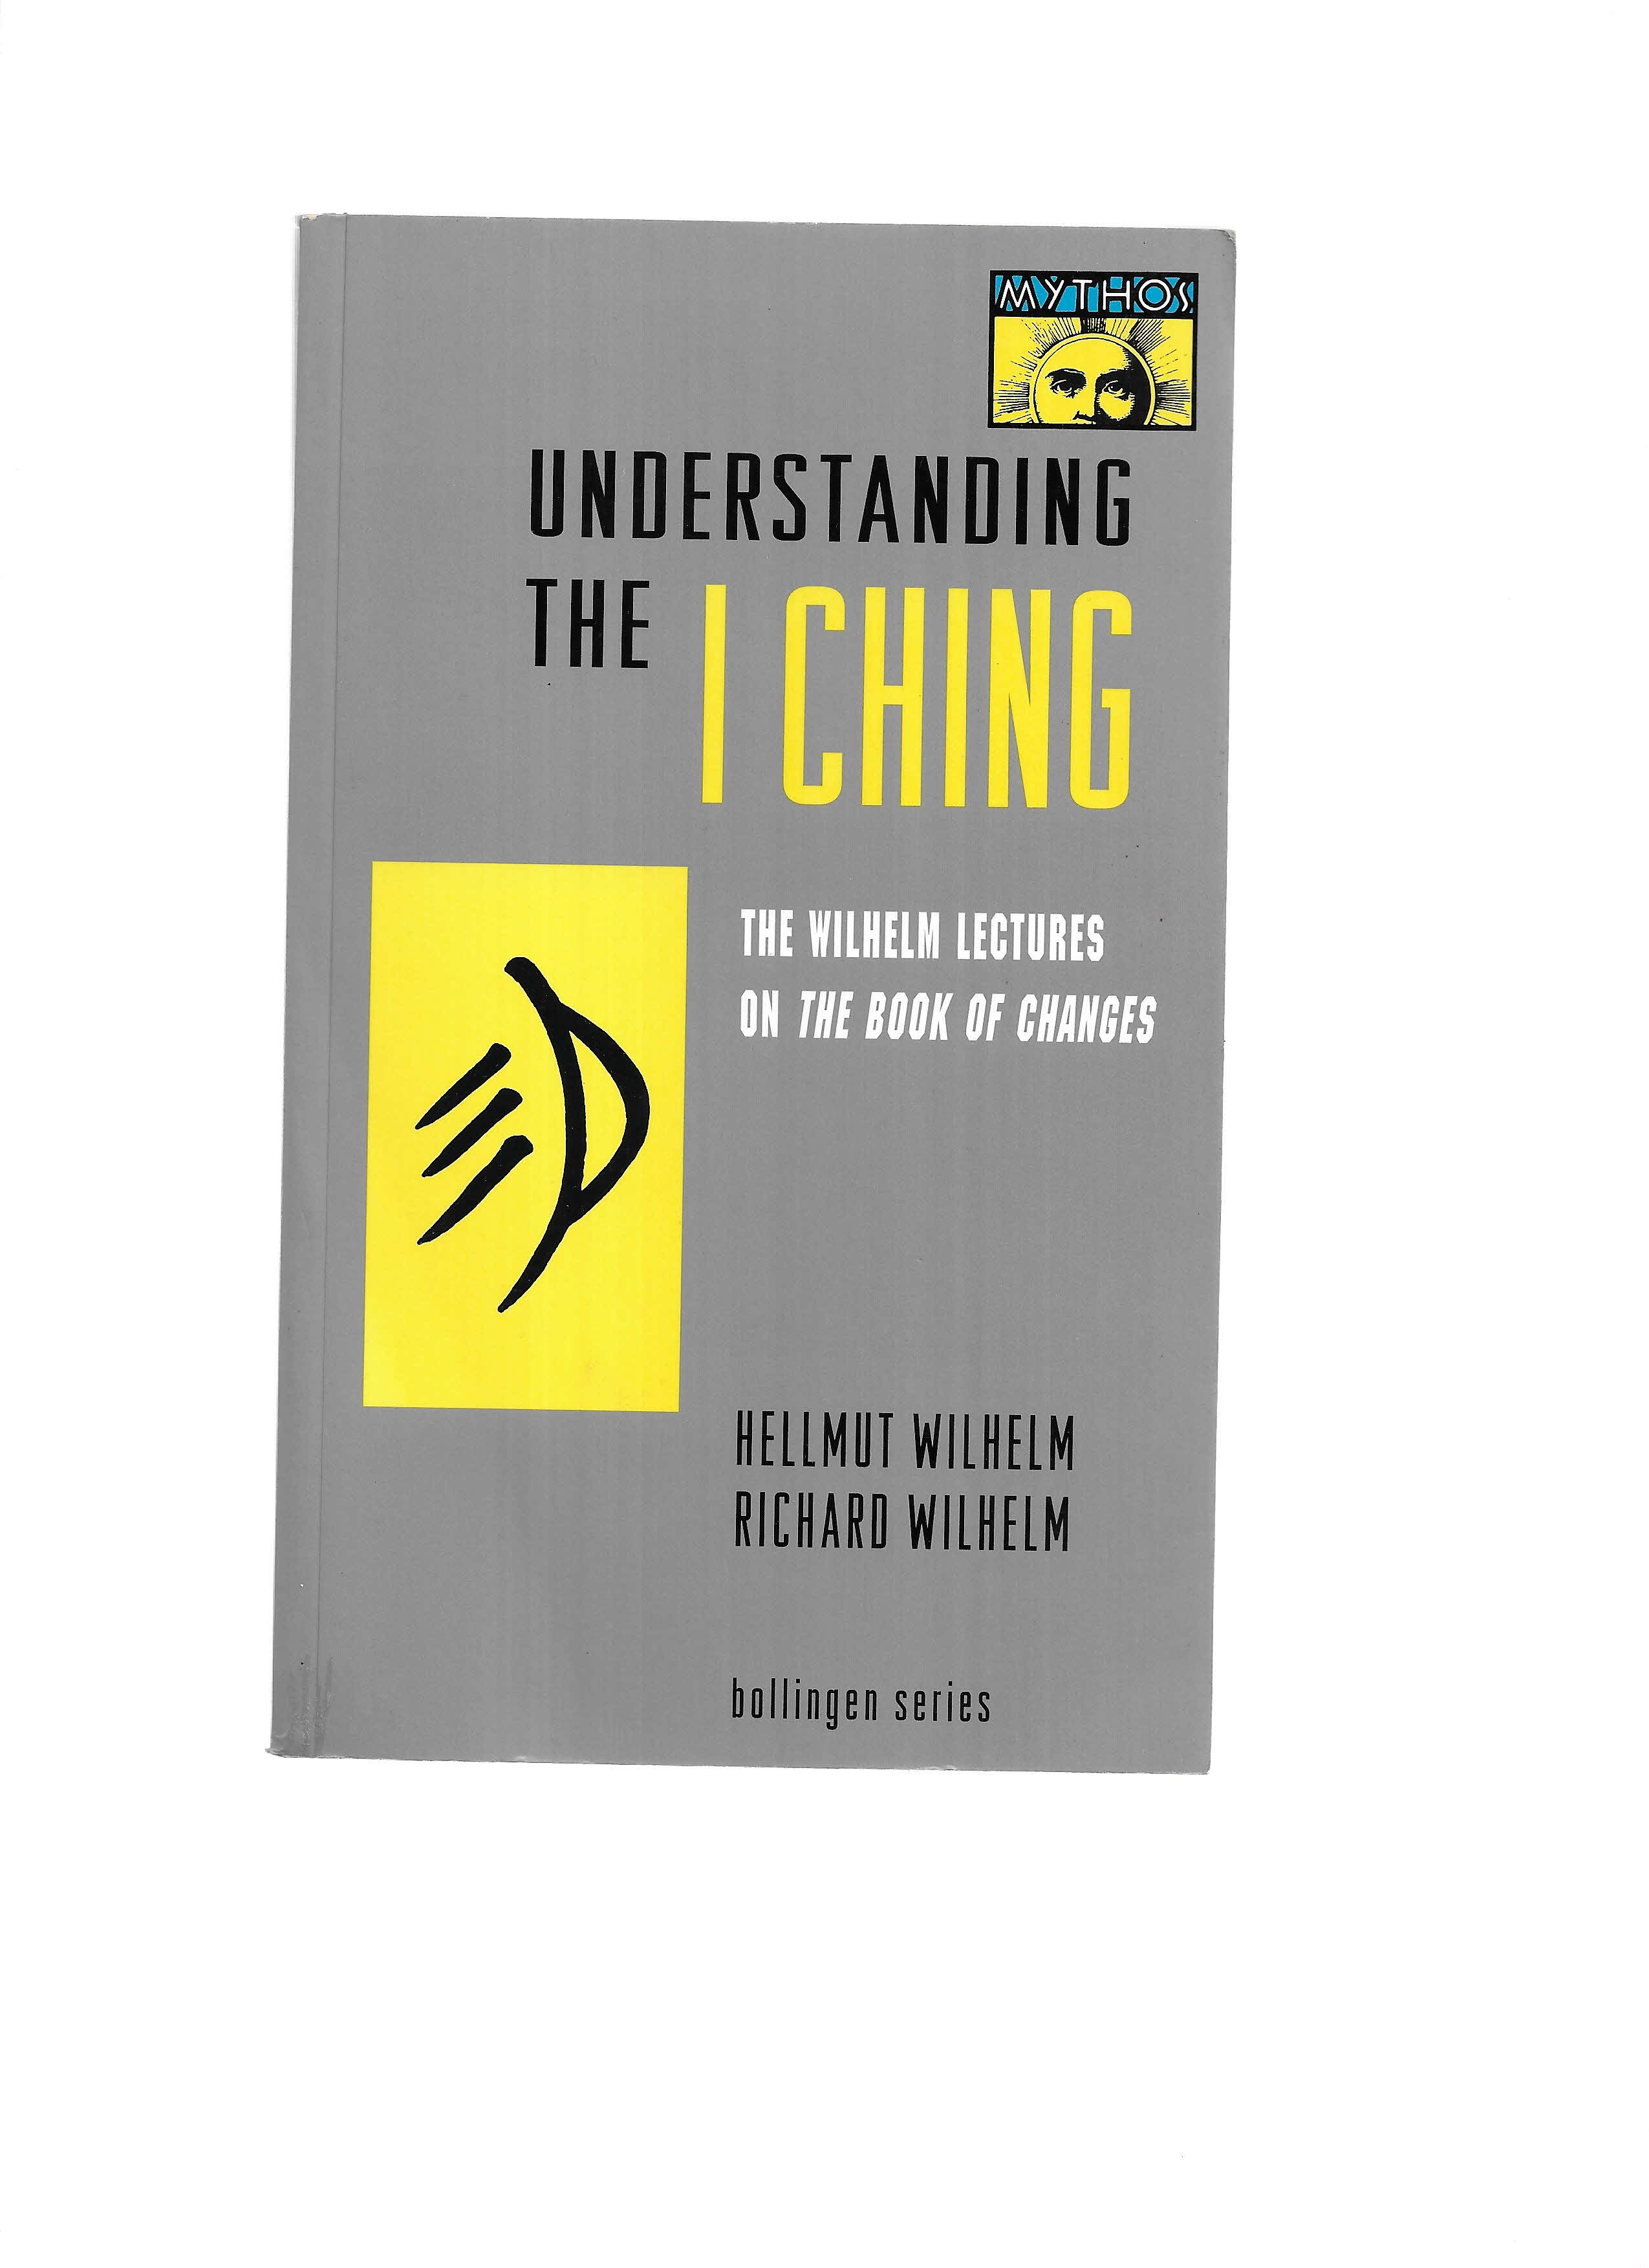 UNDERSTANDING THE I CHING: The Wilhelm Lectures On THE BOOK OF CHANGES. Including ~ Change: Eight Lectures on the I Ching by Hellmut Wilhelm Translated from the German by Cary F. Baynes. Bollingen Series LXII and ~ Lectures on the I Ching: Constancy and Change by Richard Wilhelm. Translated from the German by Irene Eber. Bollingen Series XIX:2 - Wilhelm, Helmut & Richard Wilhelm